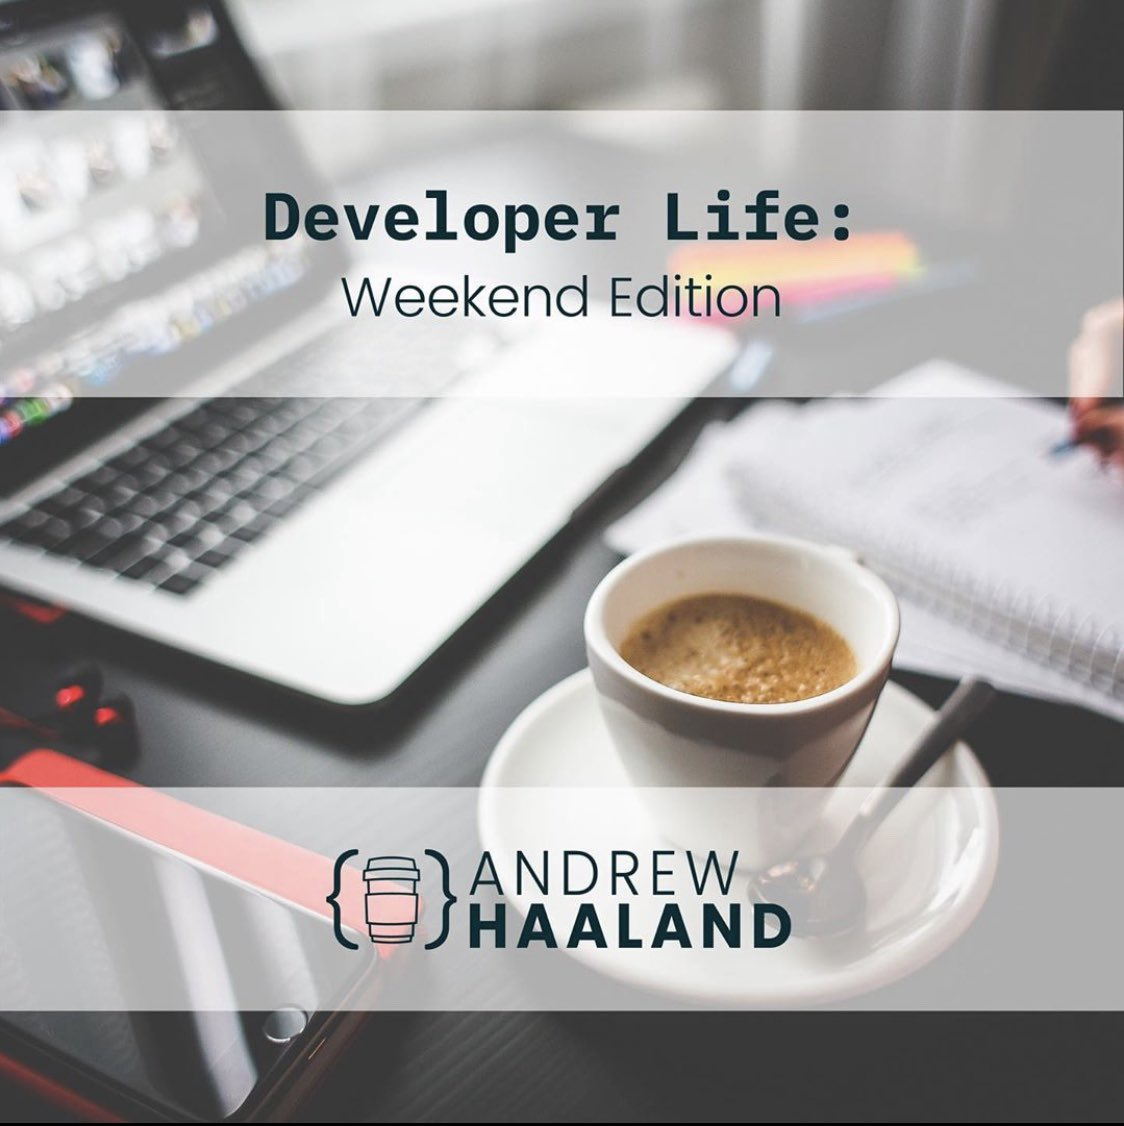 Do you find yourself in the computer world pulling away from computers as a hobby?  Check out my latest post on my personal experience! #developer #DevDiscuss #programmer #InformationTechnology #nerd #nerdlife https://www.blog.andrewhaaland.com/2020/07/06/developer-life-weekend-life/…pic.twitter.com/Eguxj42k61